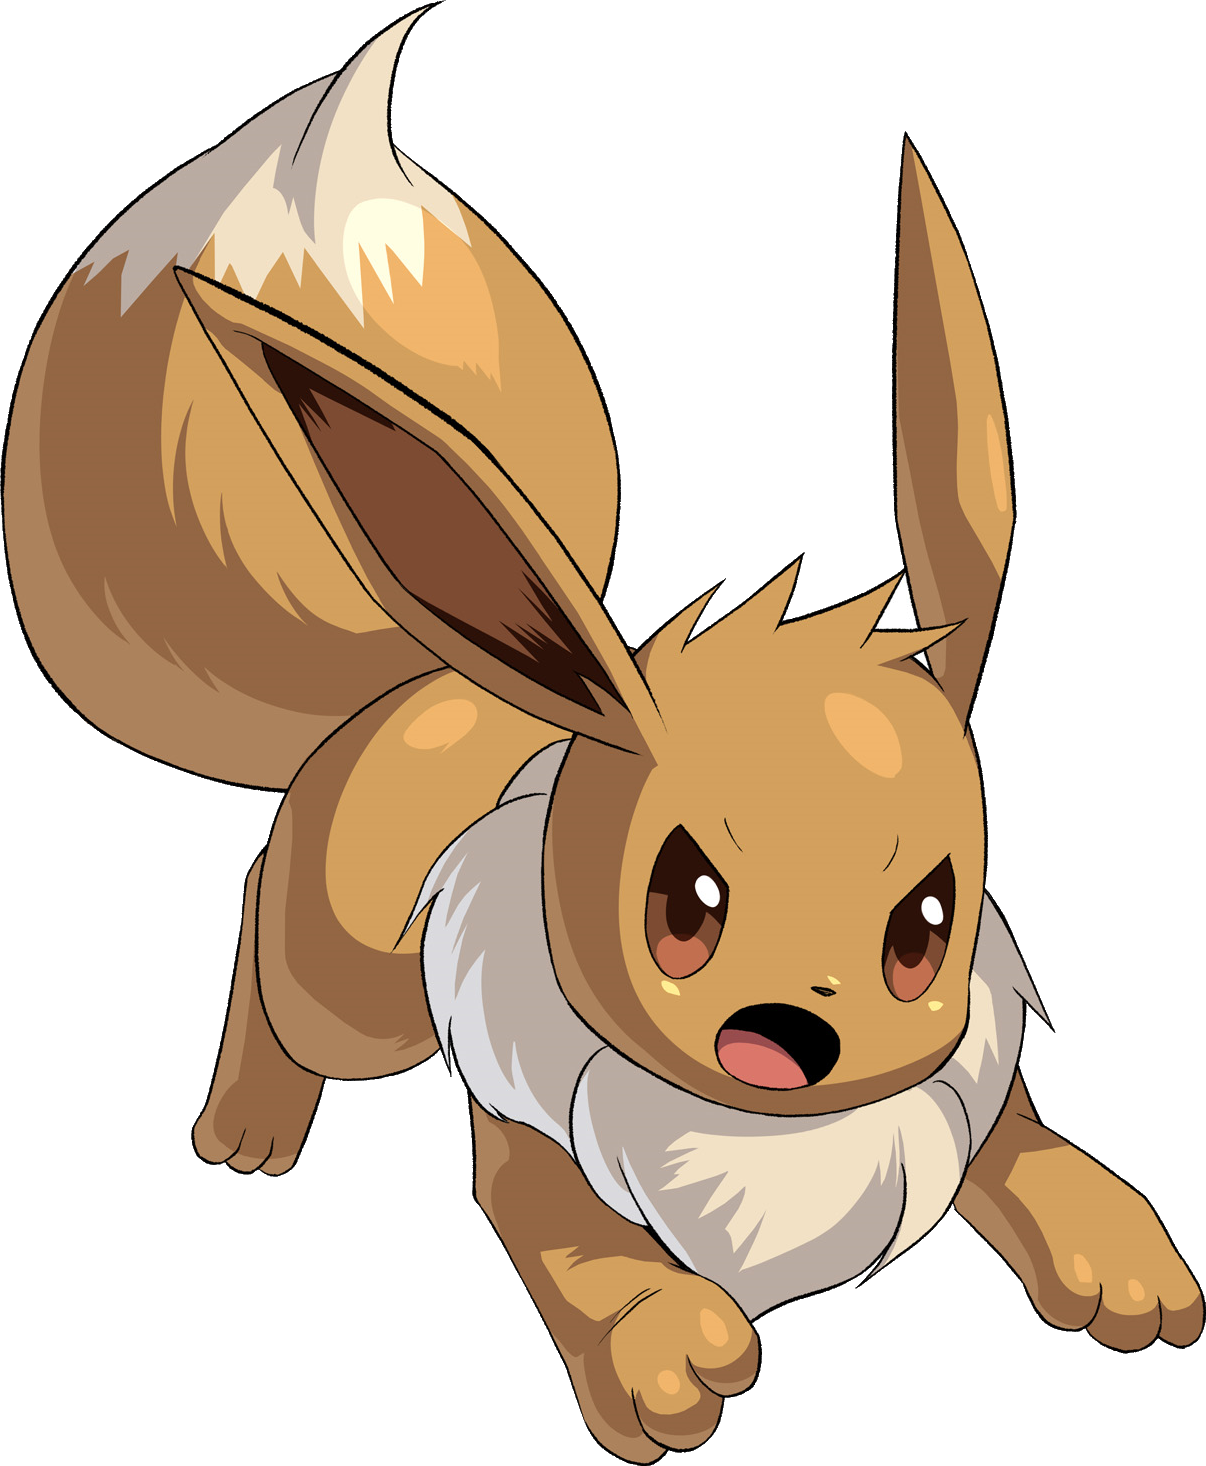 133Eevee_Pokemon_Conquest.png